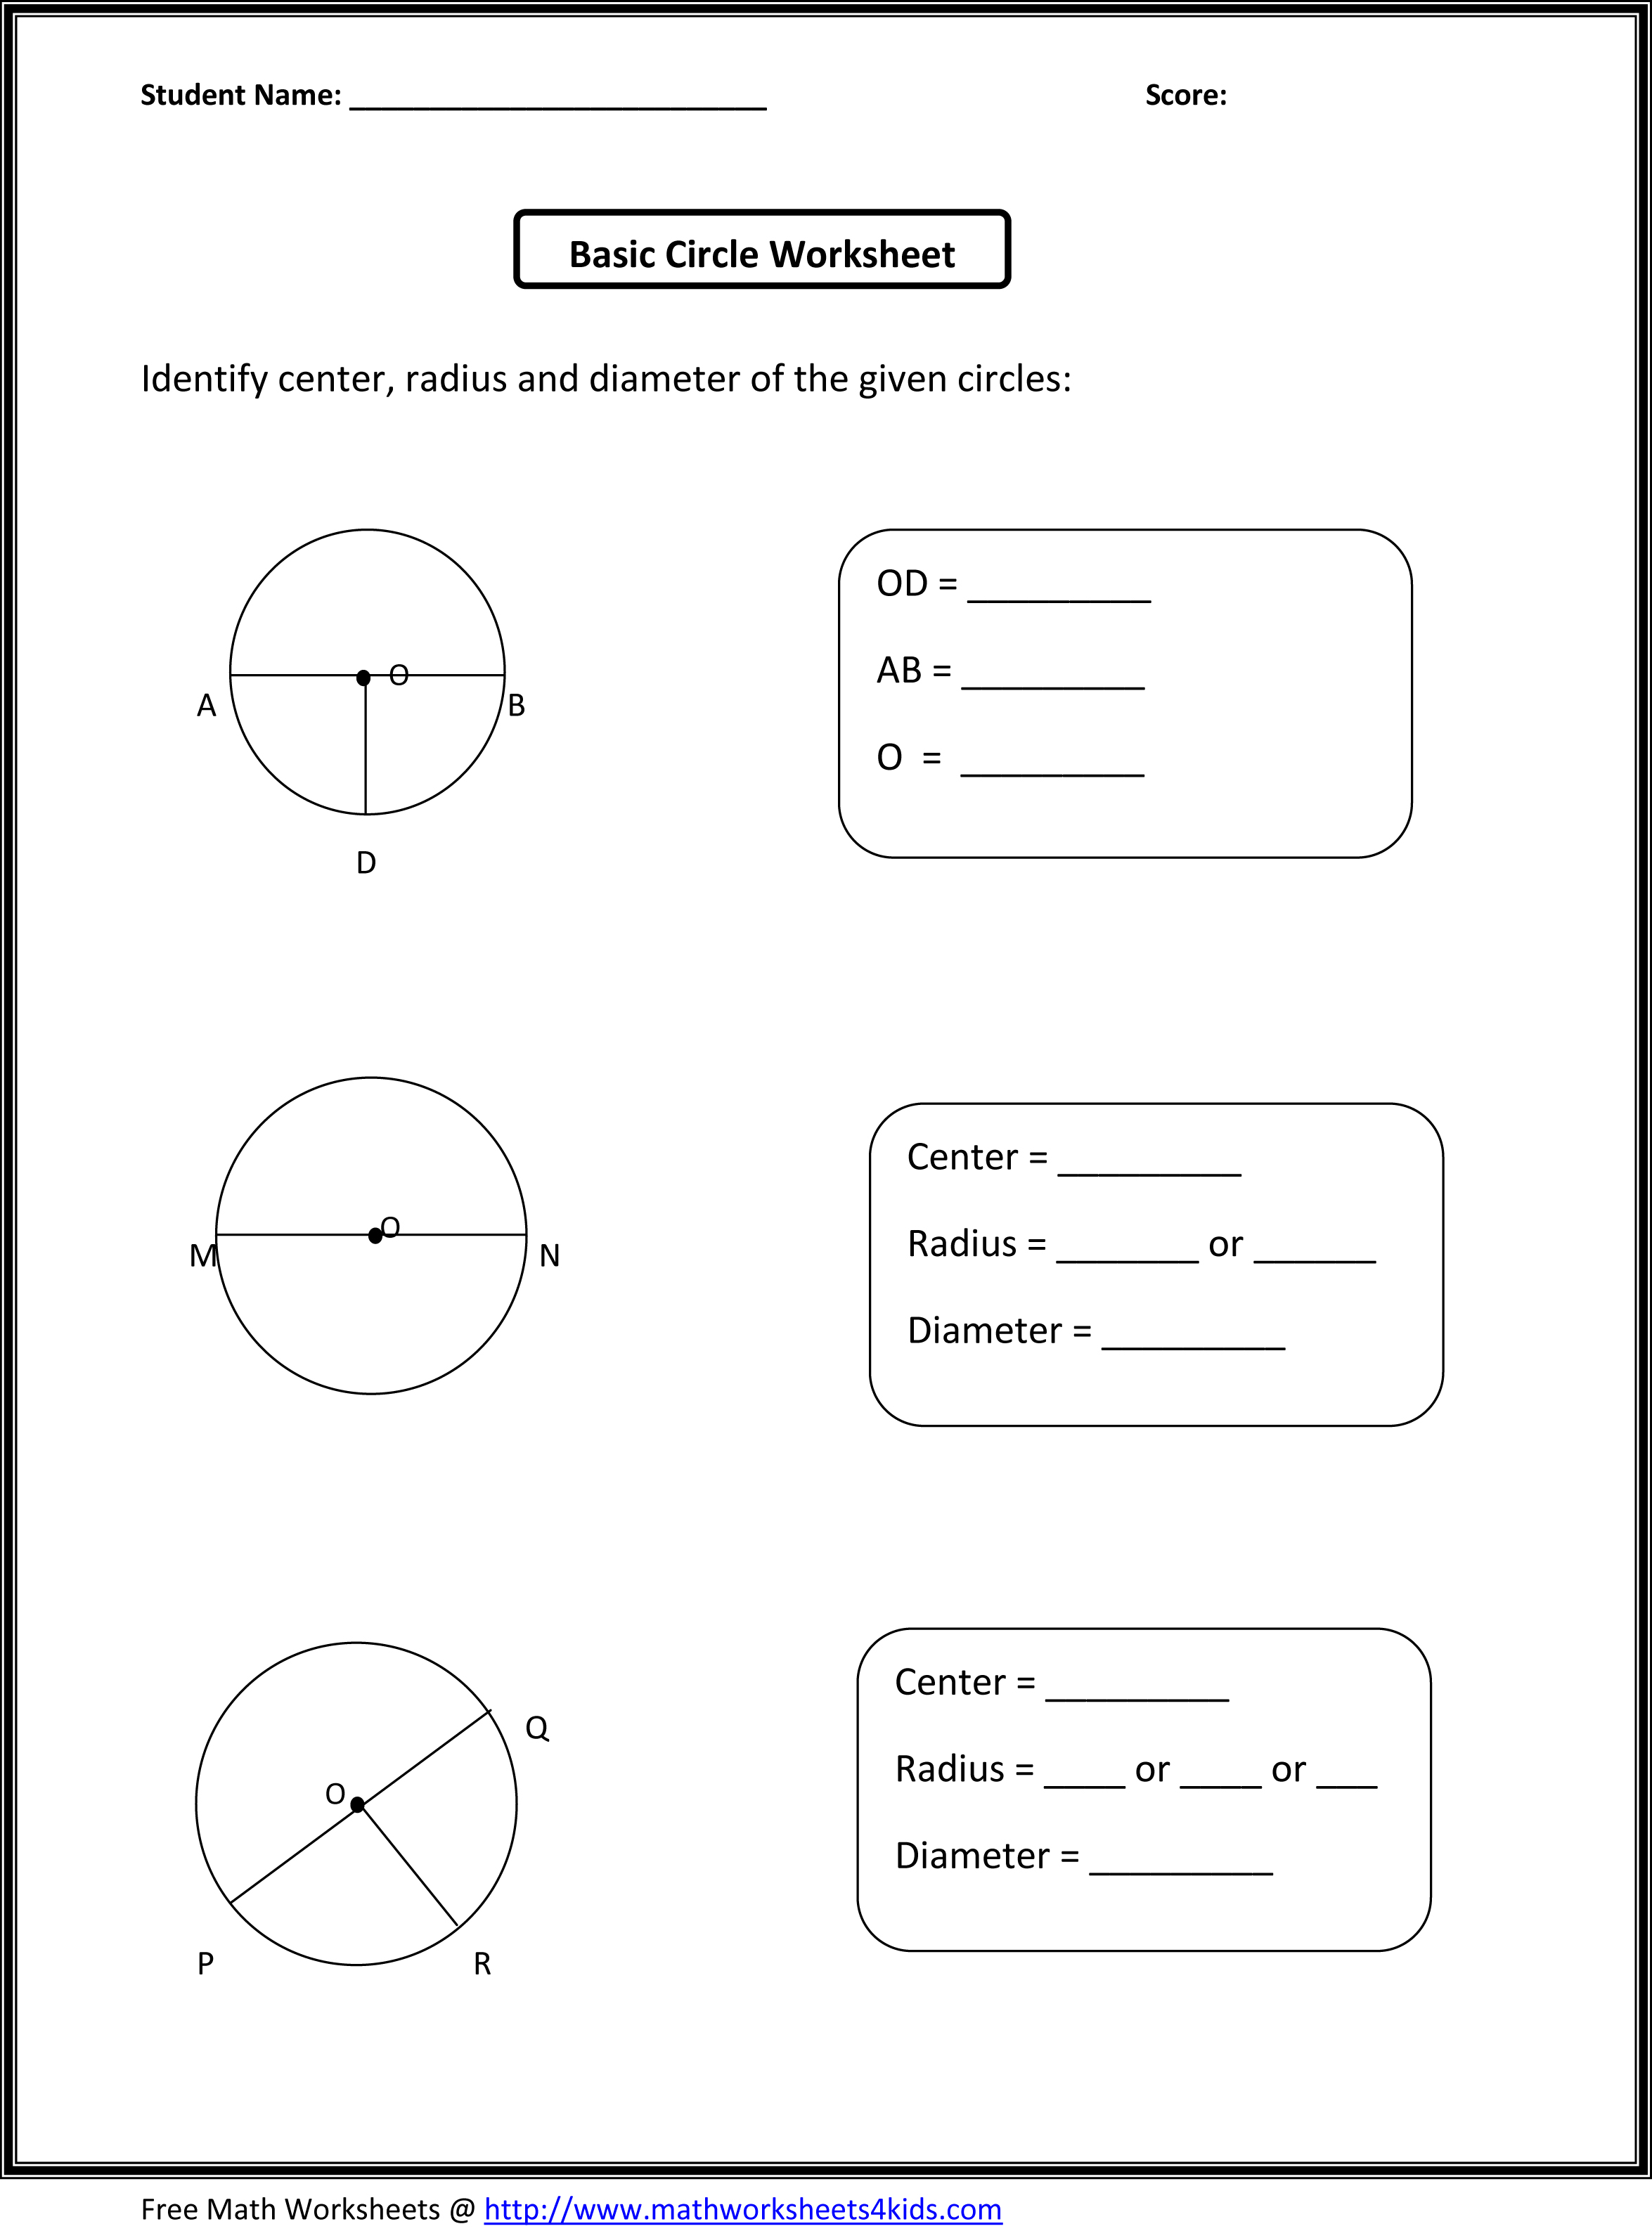 Math Problems For 3rd Grade Scalien – Free Printable Math Worksheets for 3rd Grade Word Problems